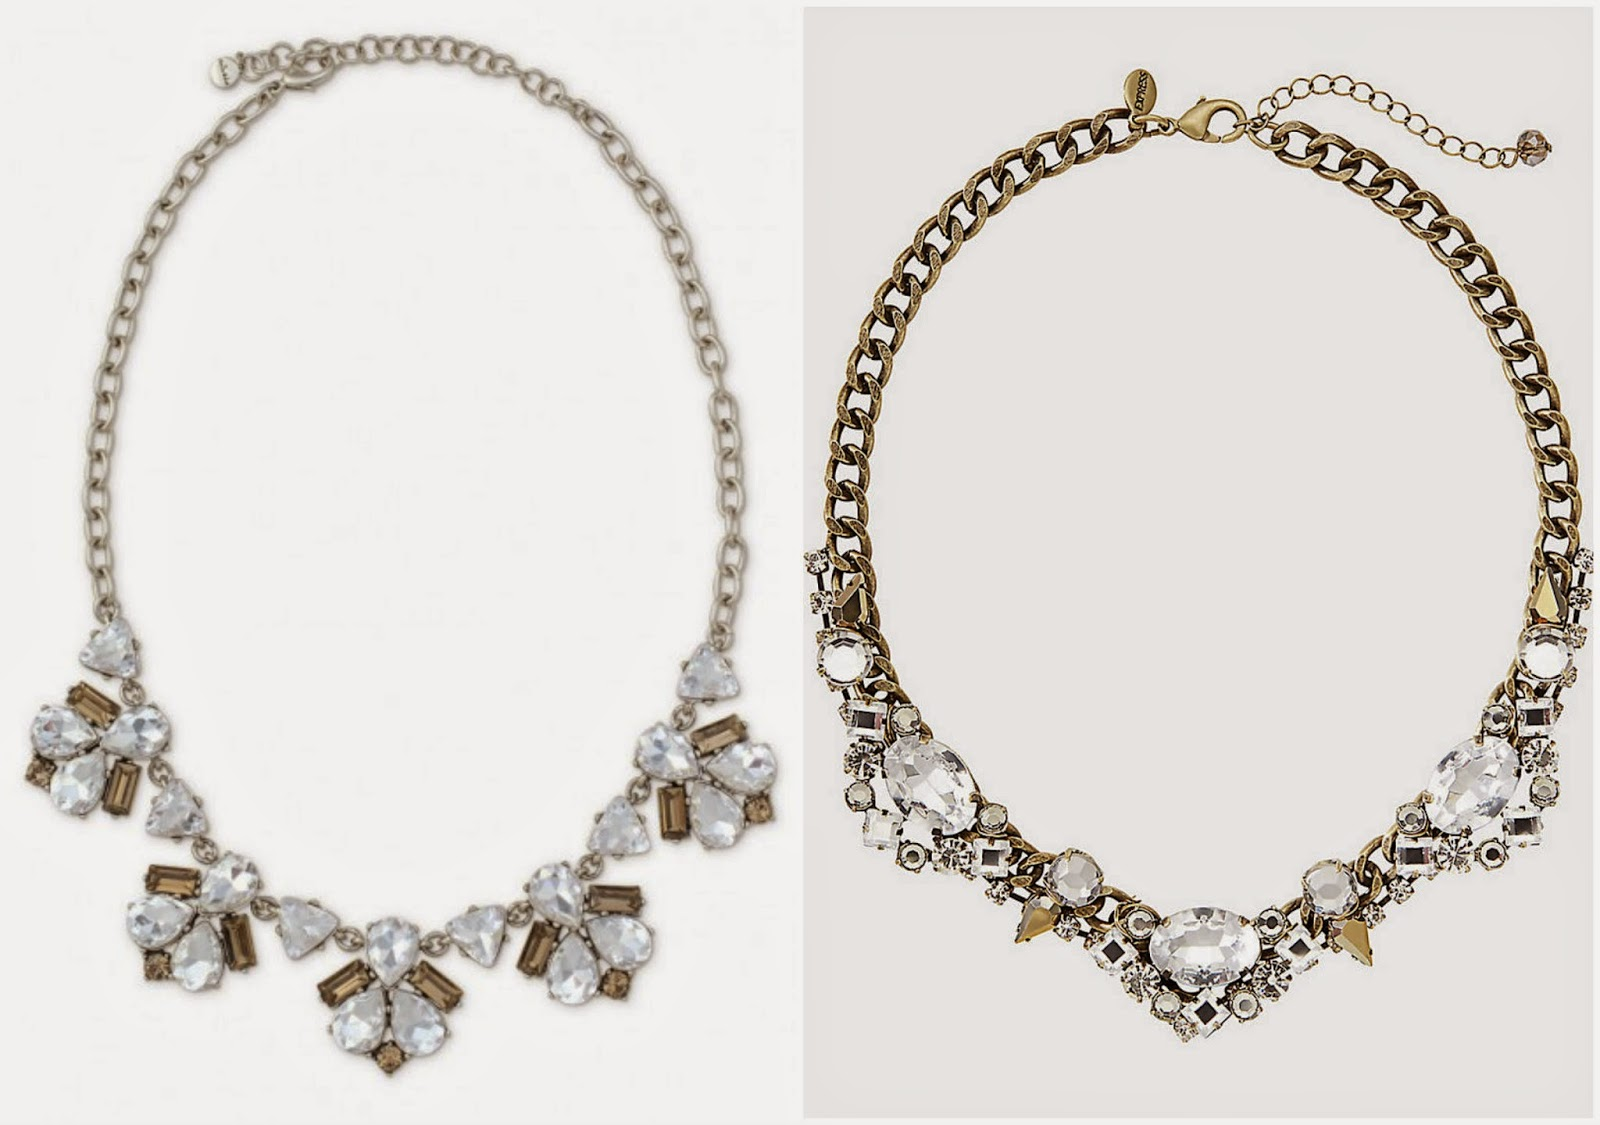 Stella & Dot lookalike pieces from Express, budget options